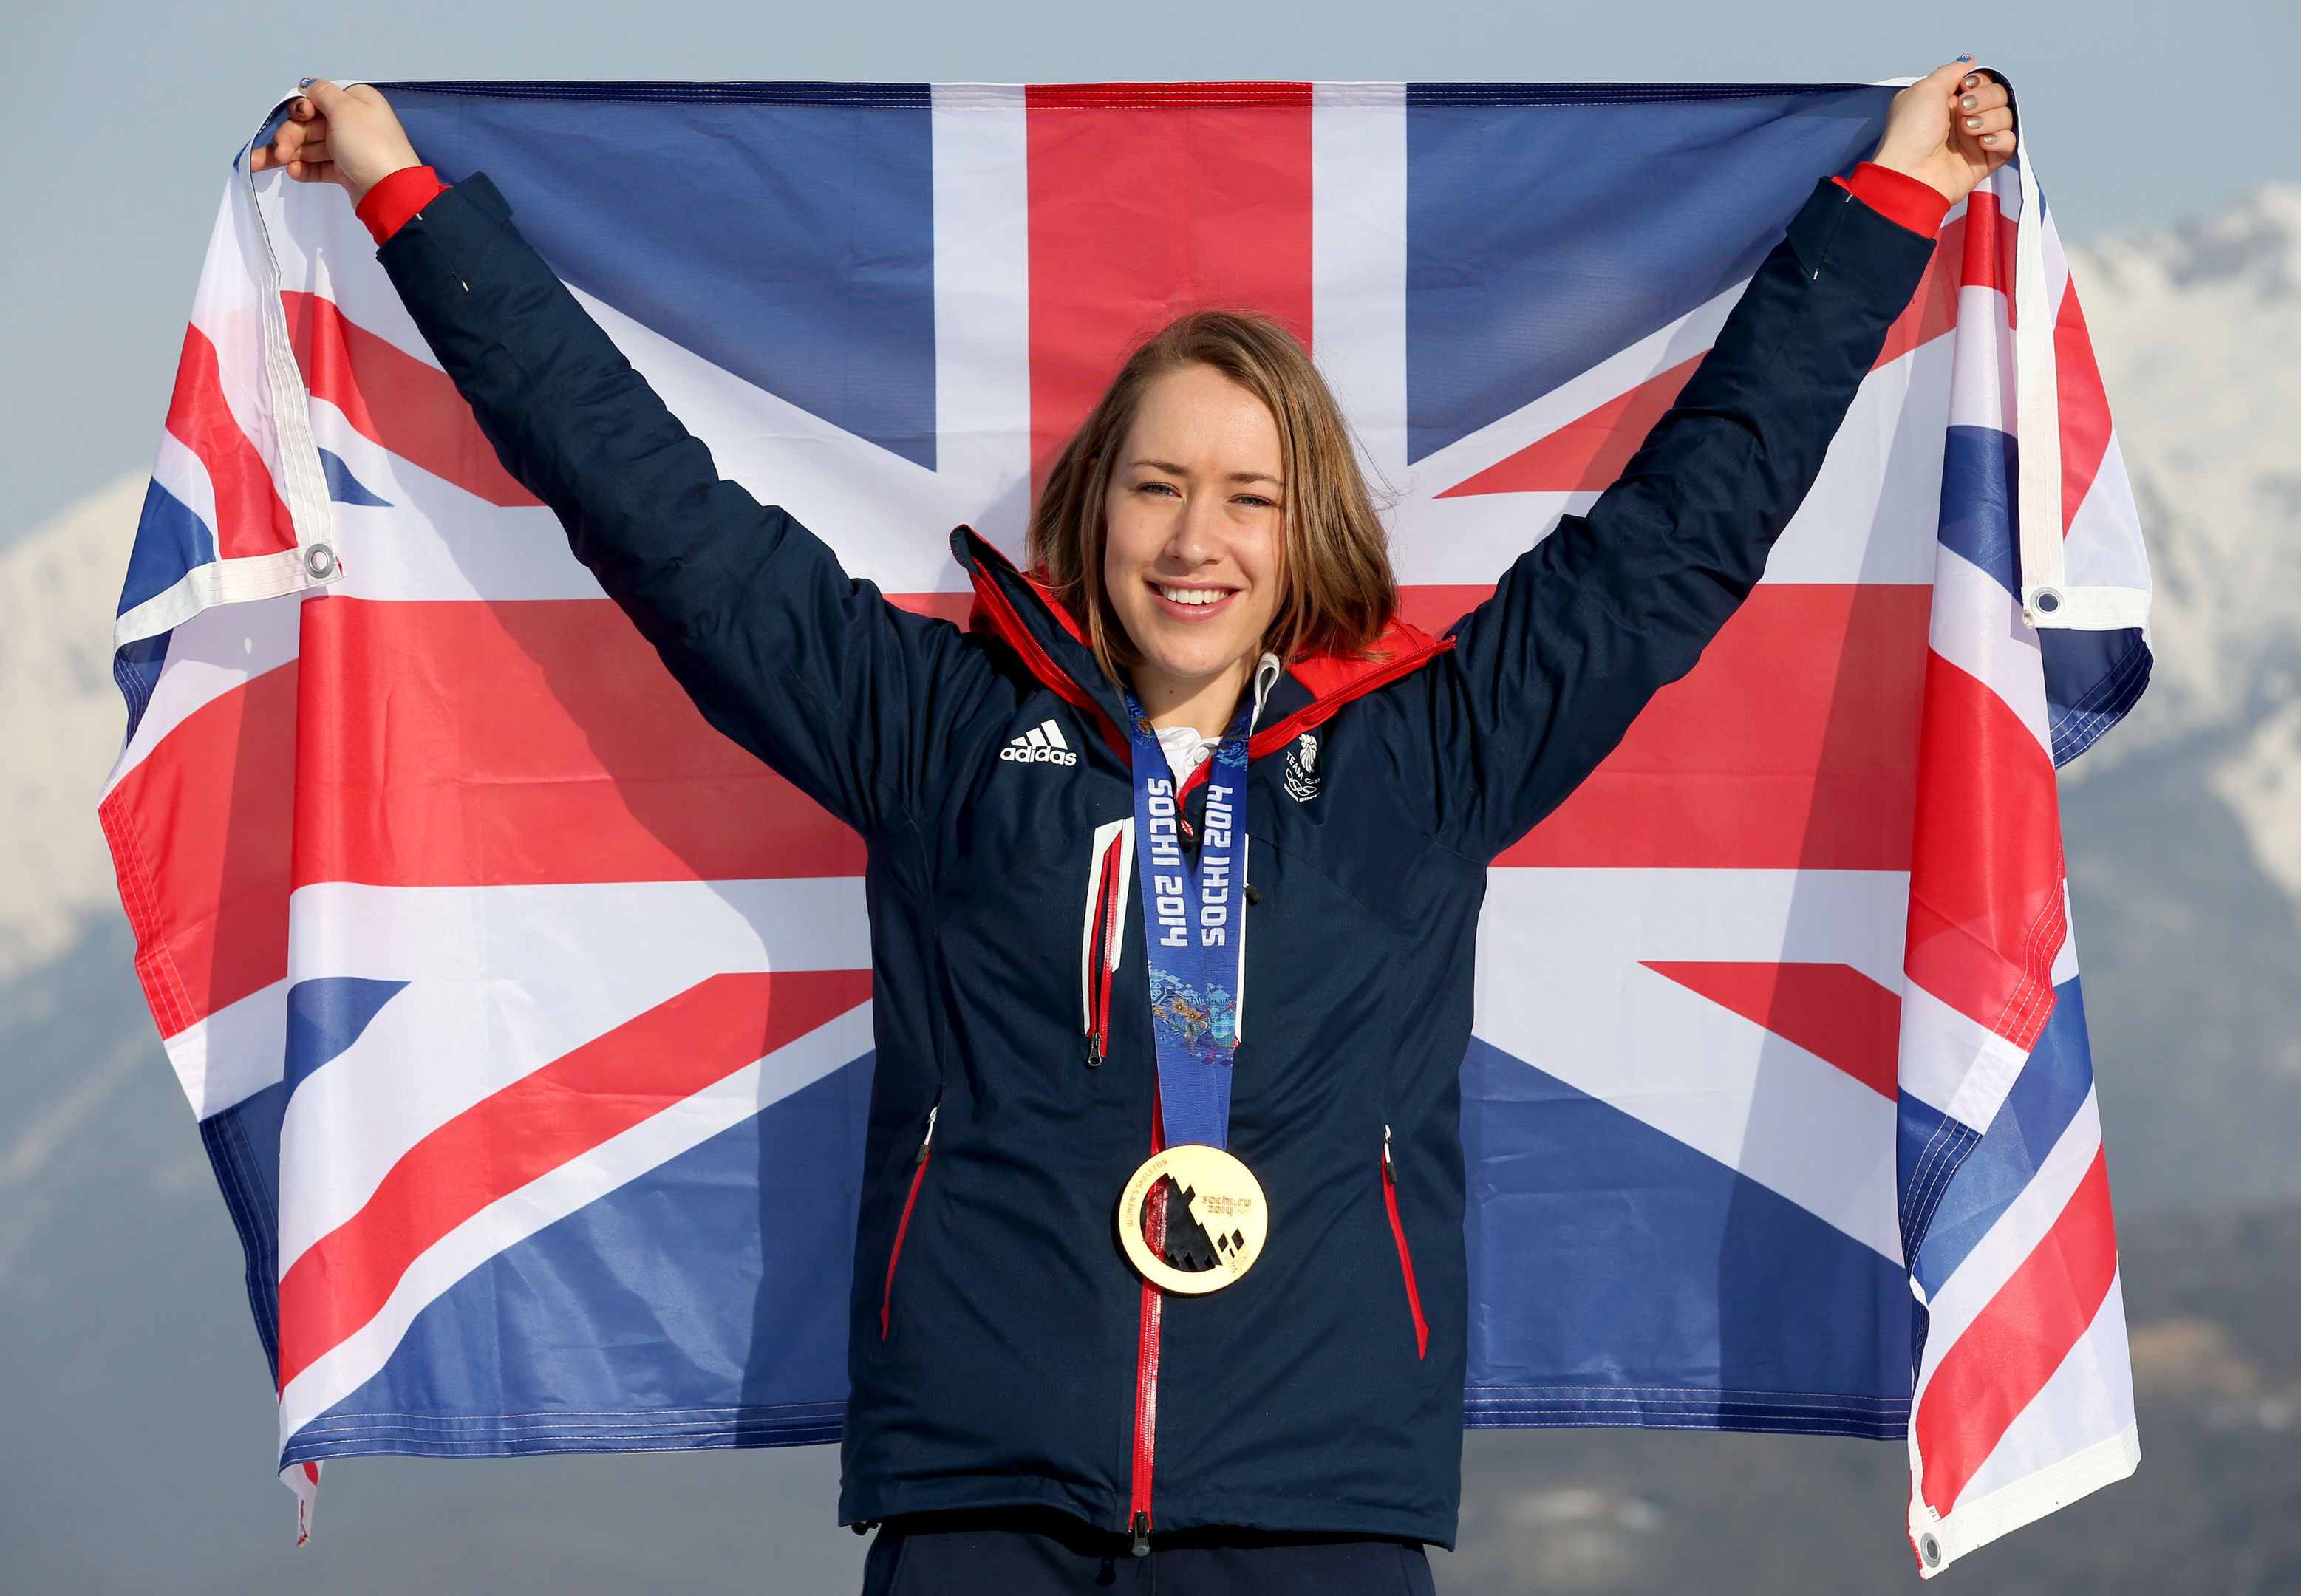 Lizzy Yarnold in Sochi when she won her Olympic gold.